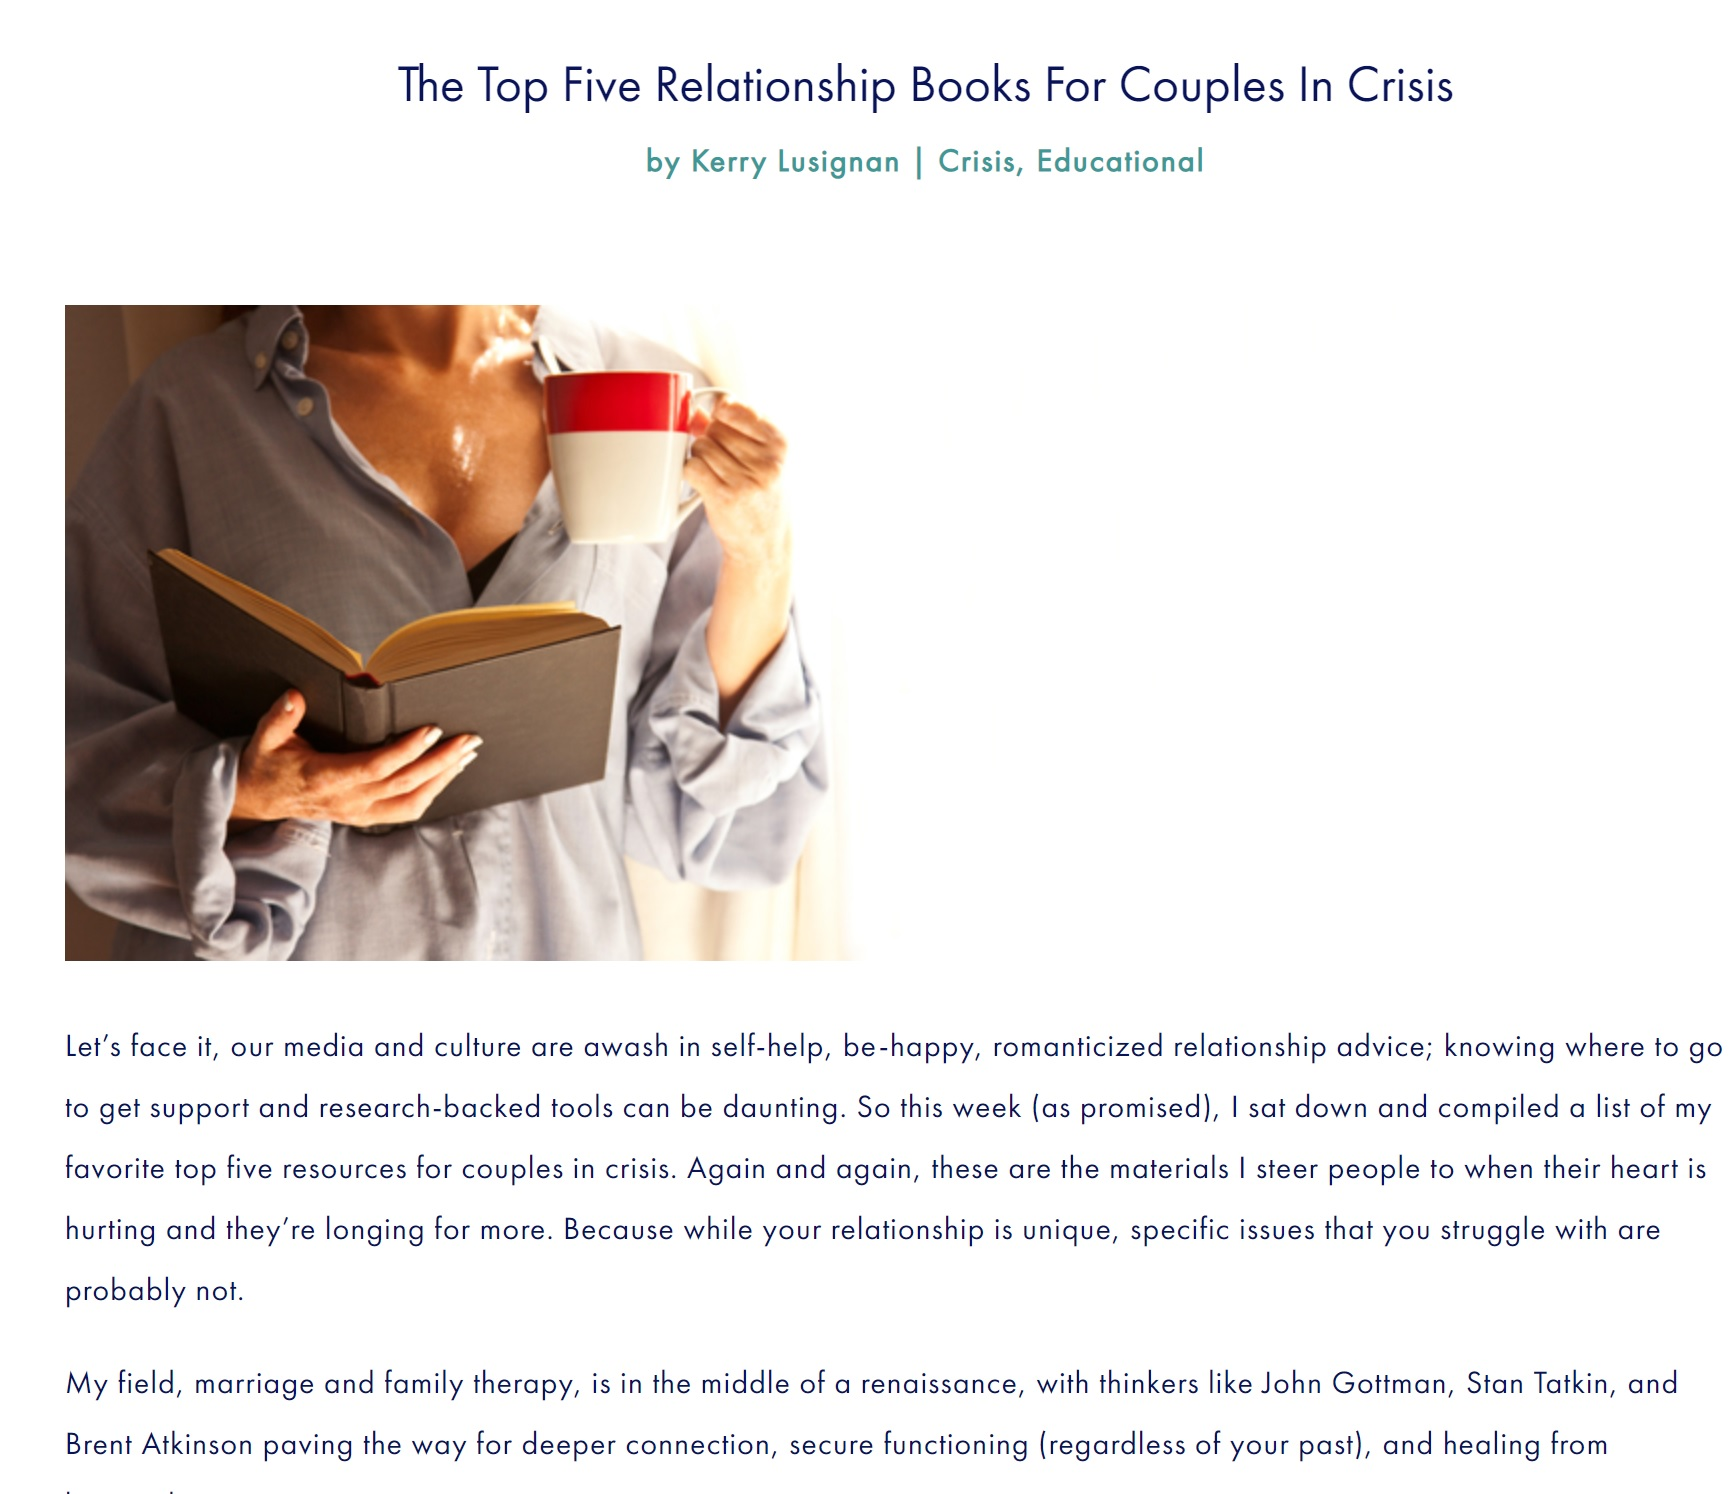 The Couples Clinic book rated #1